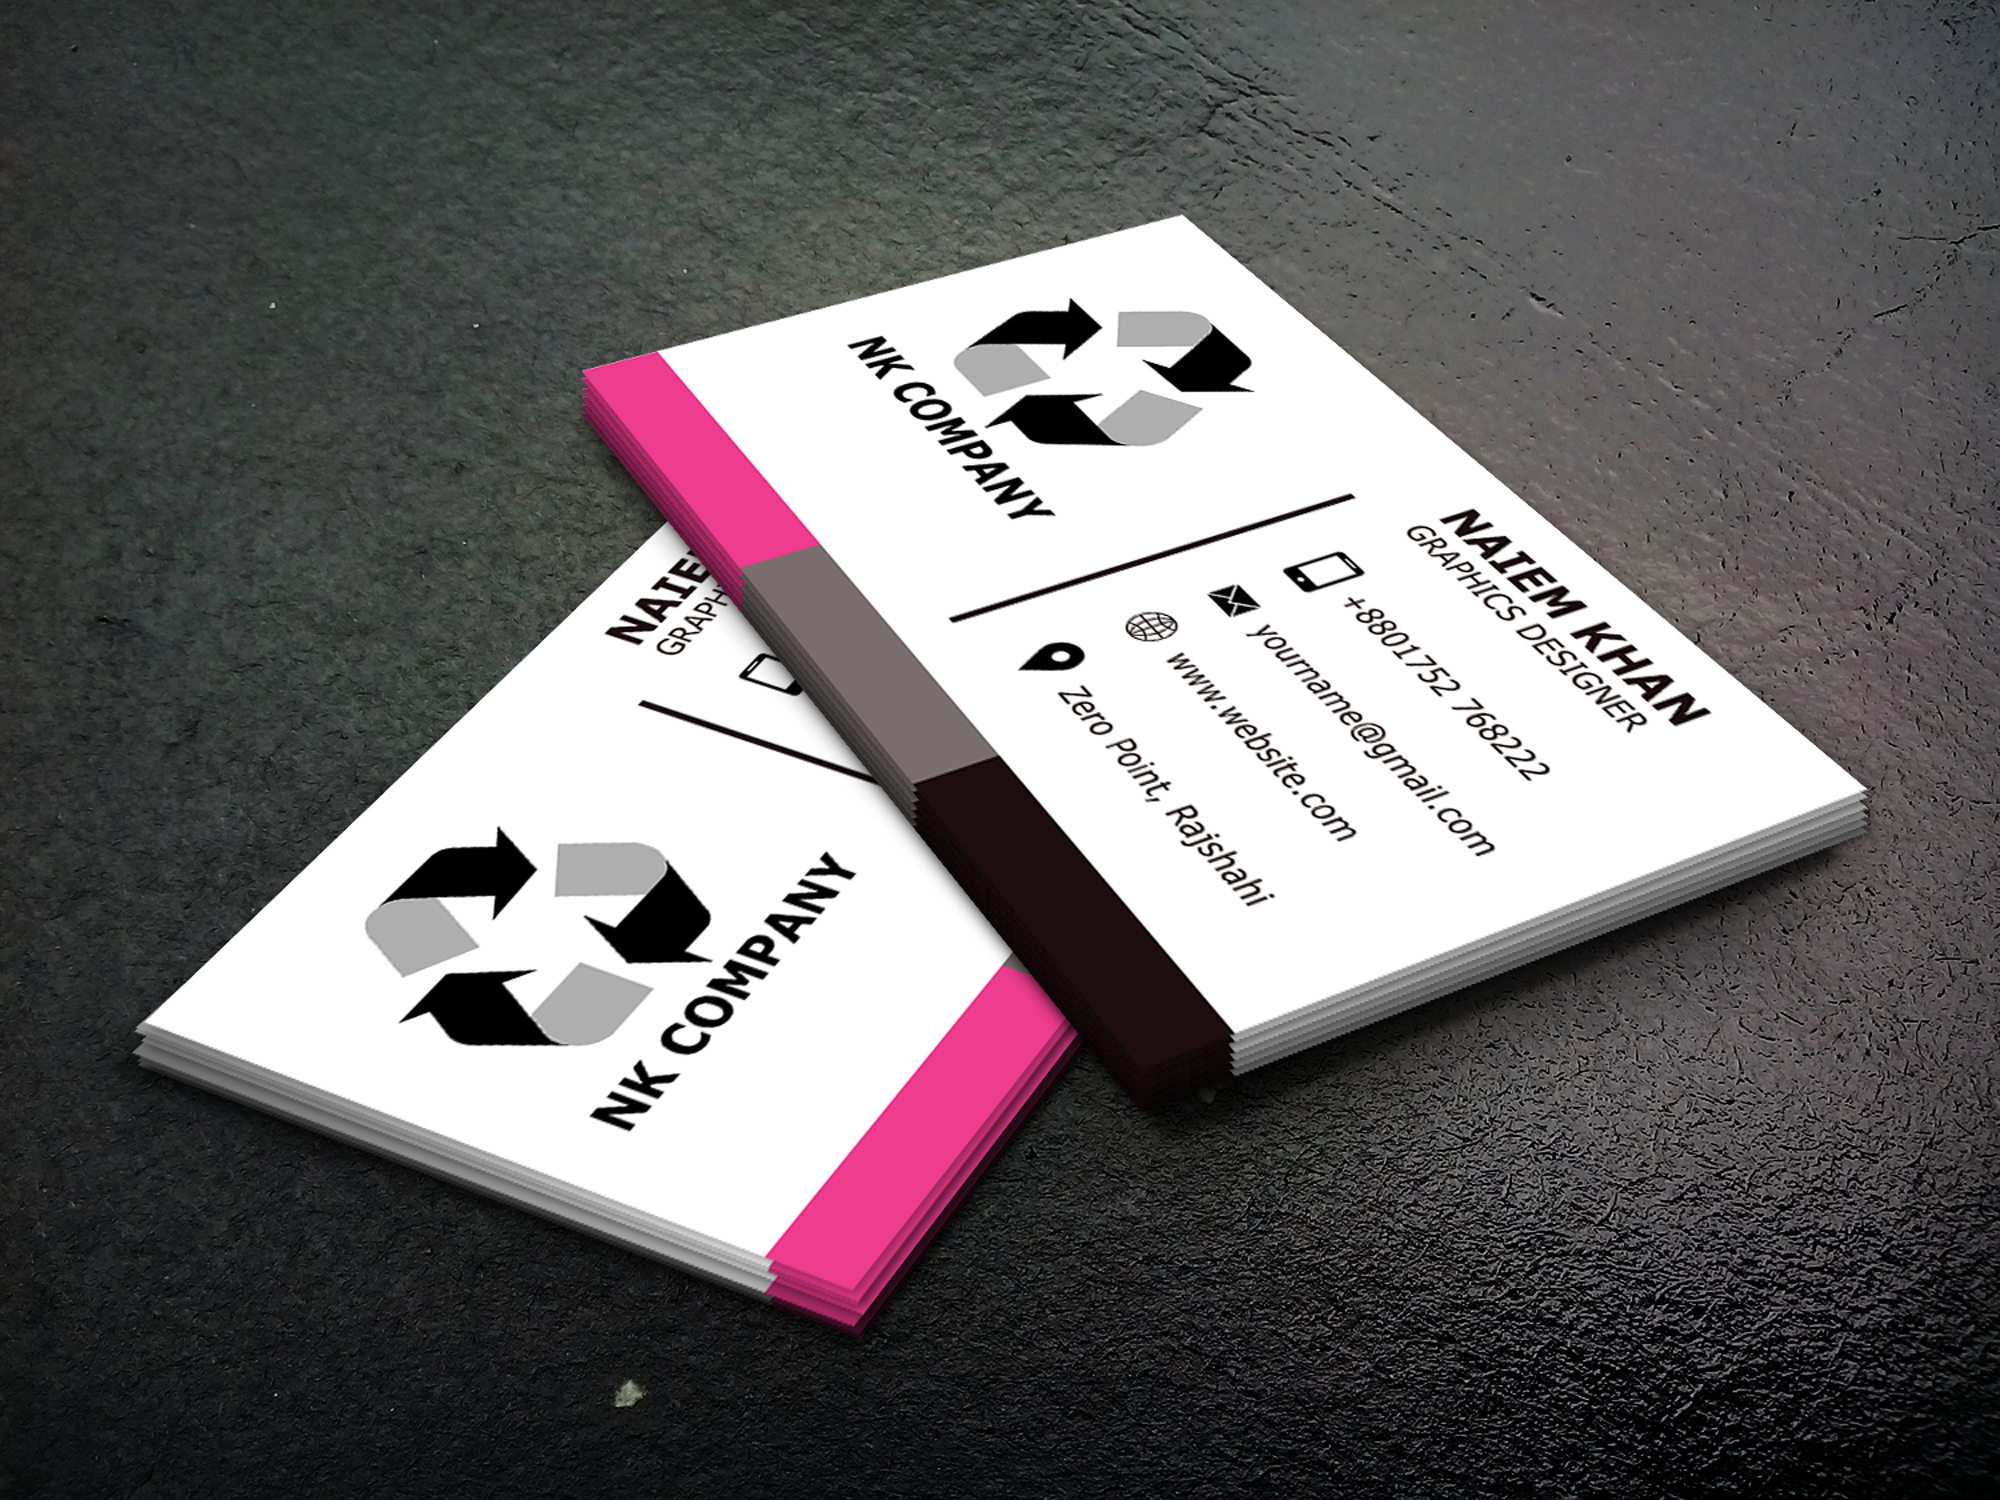 I will creative, unique and professional business card design